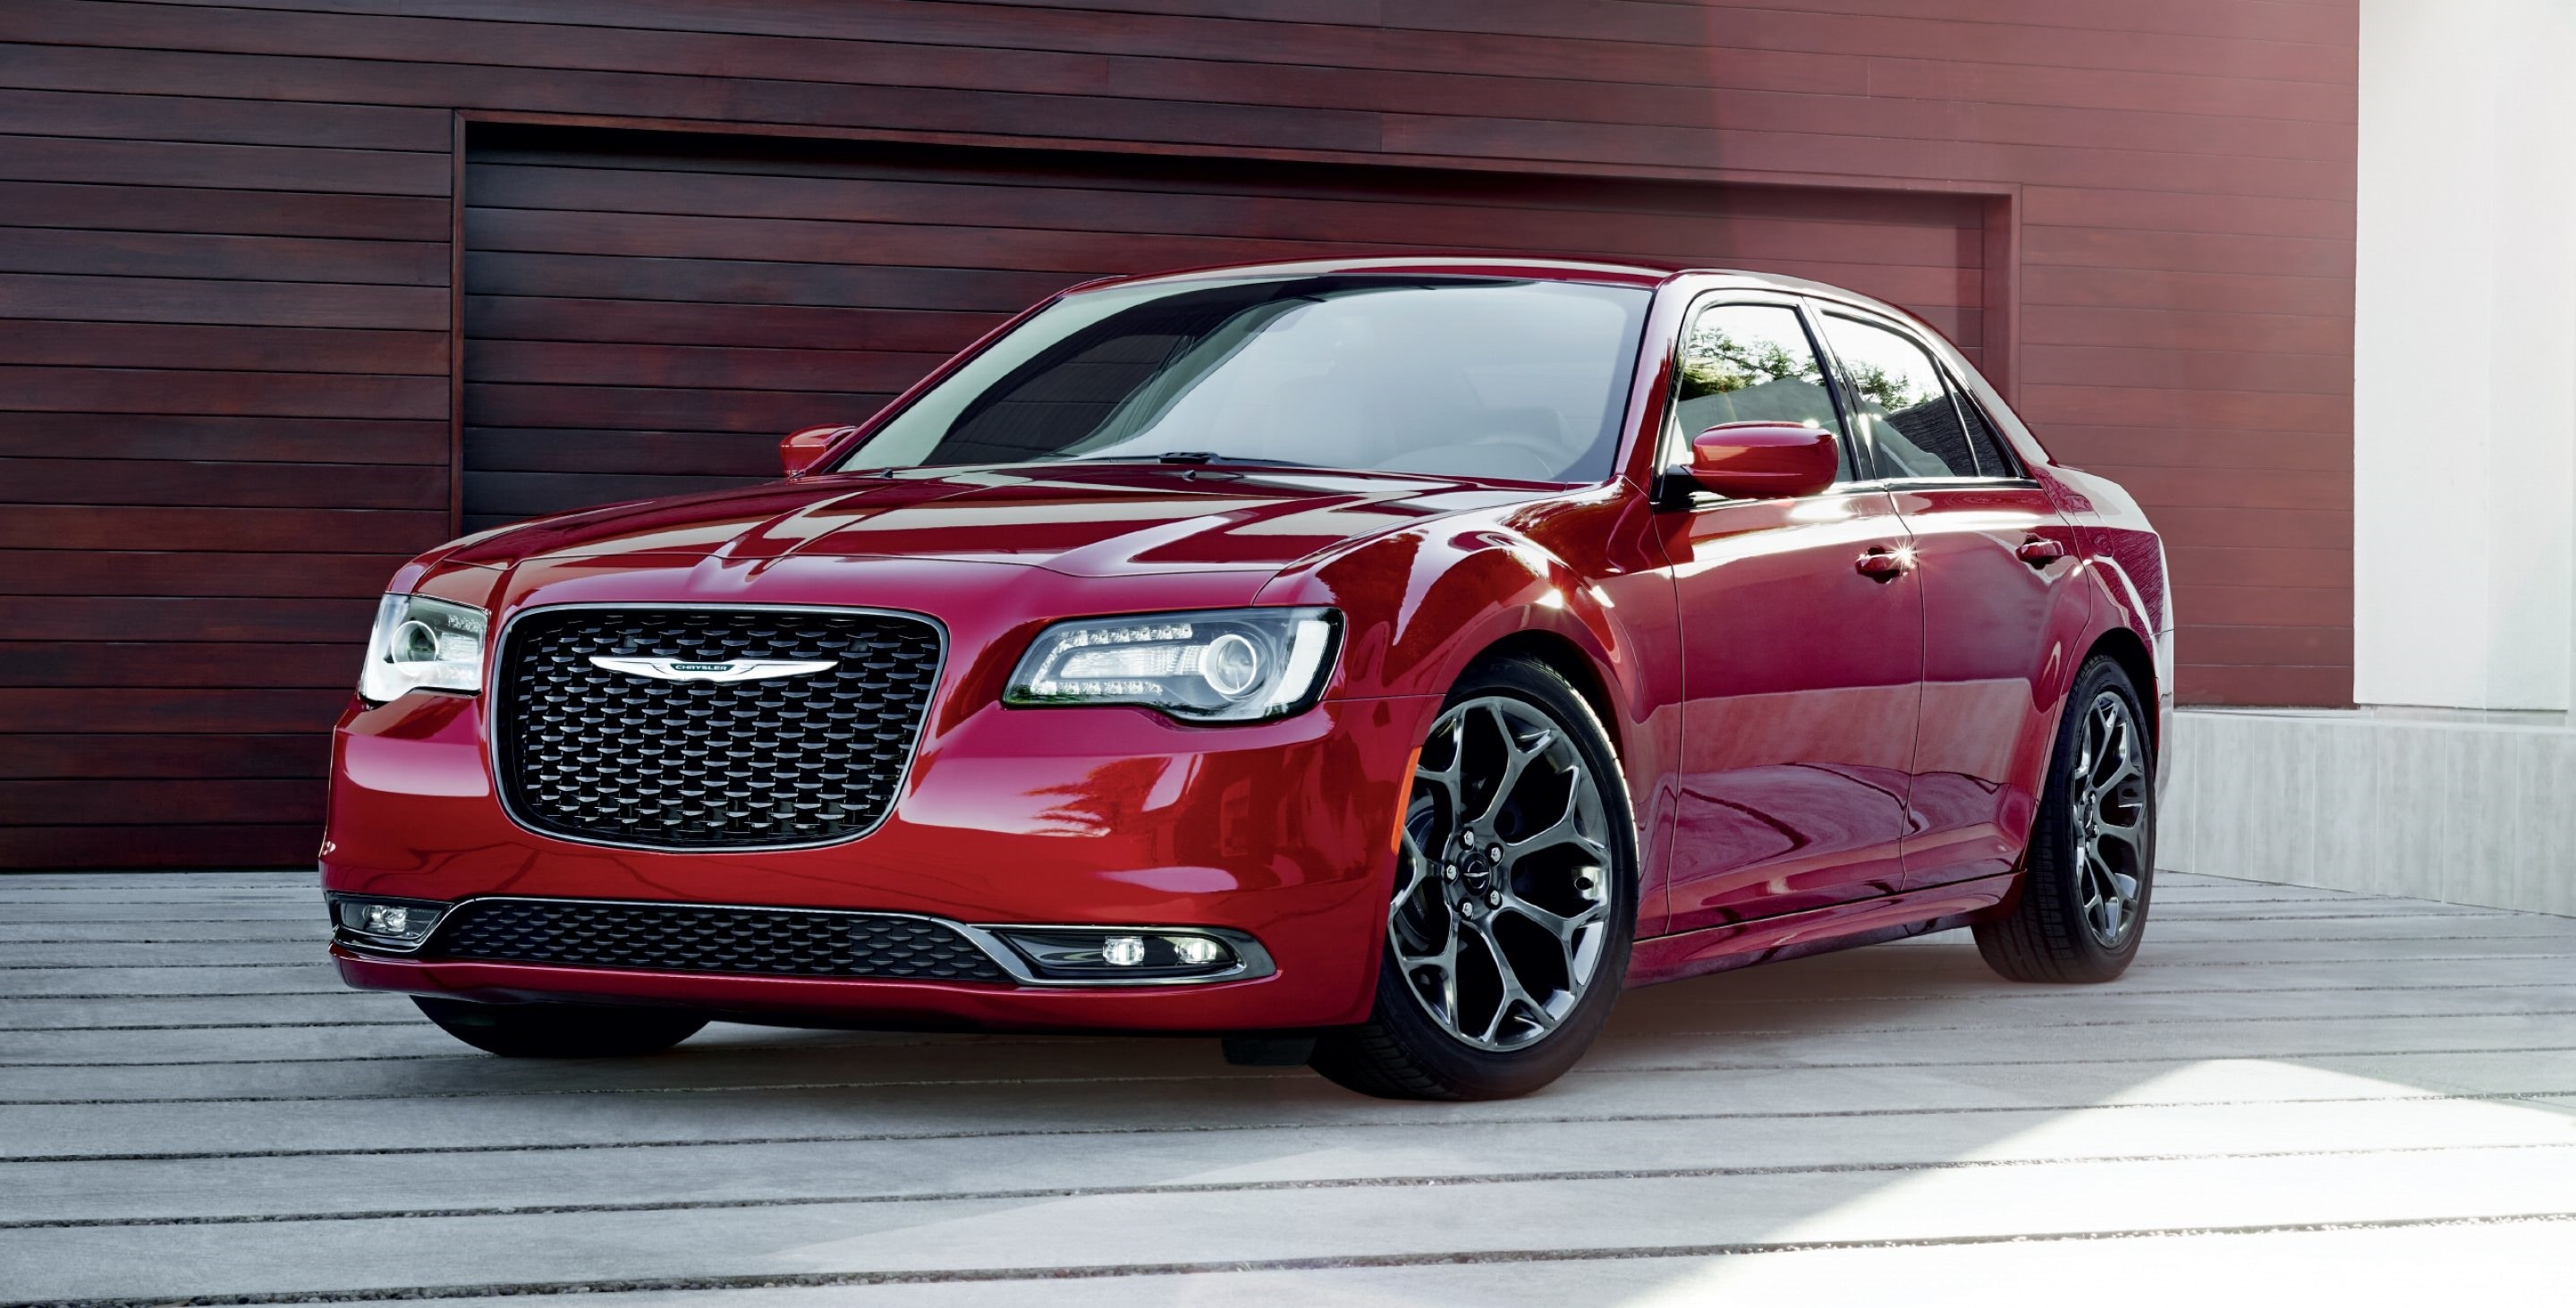 Used Chrysler 300 Sale West Palm beach